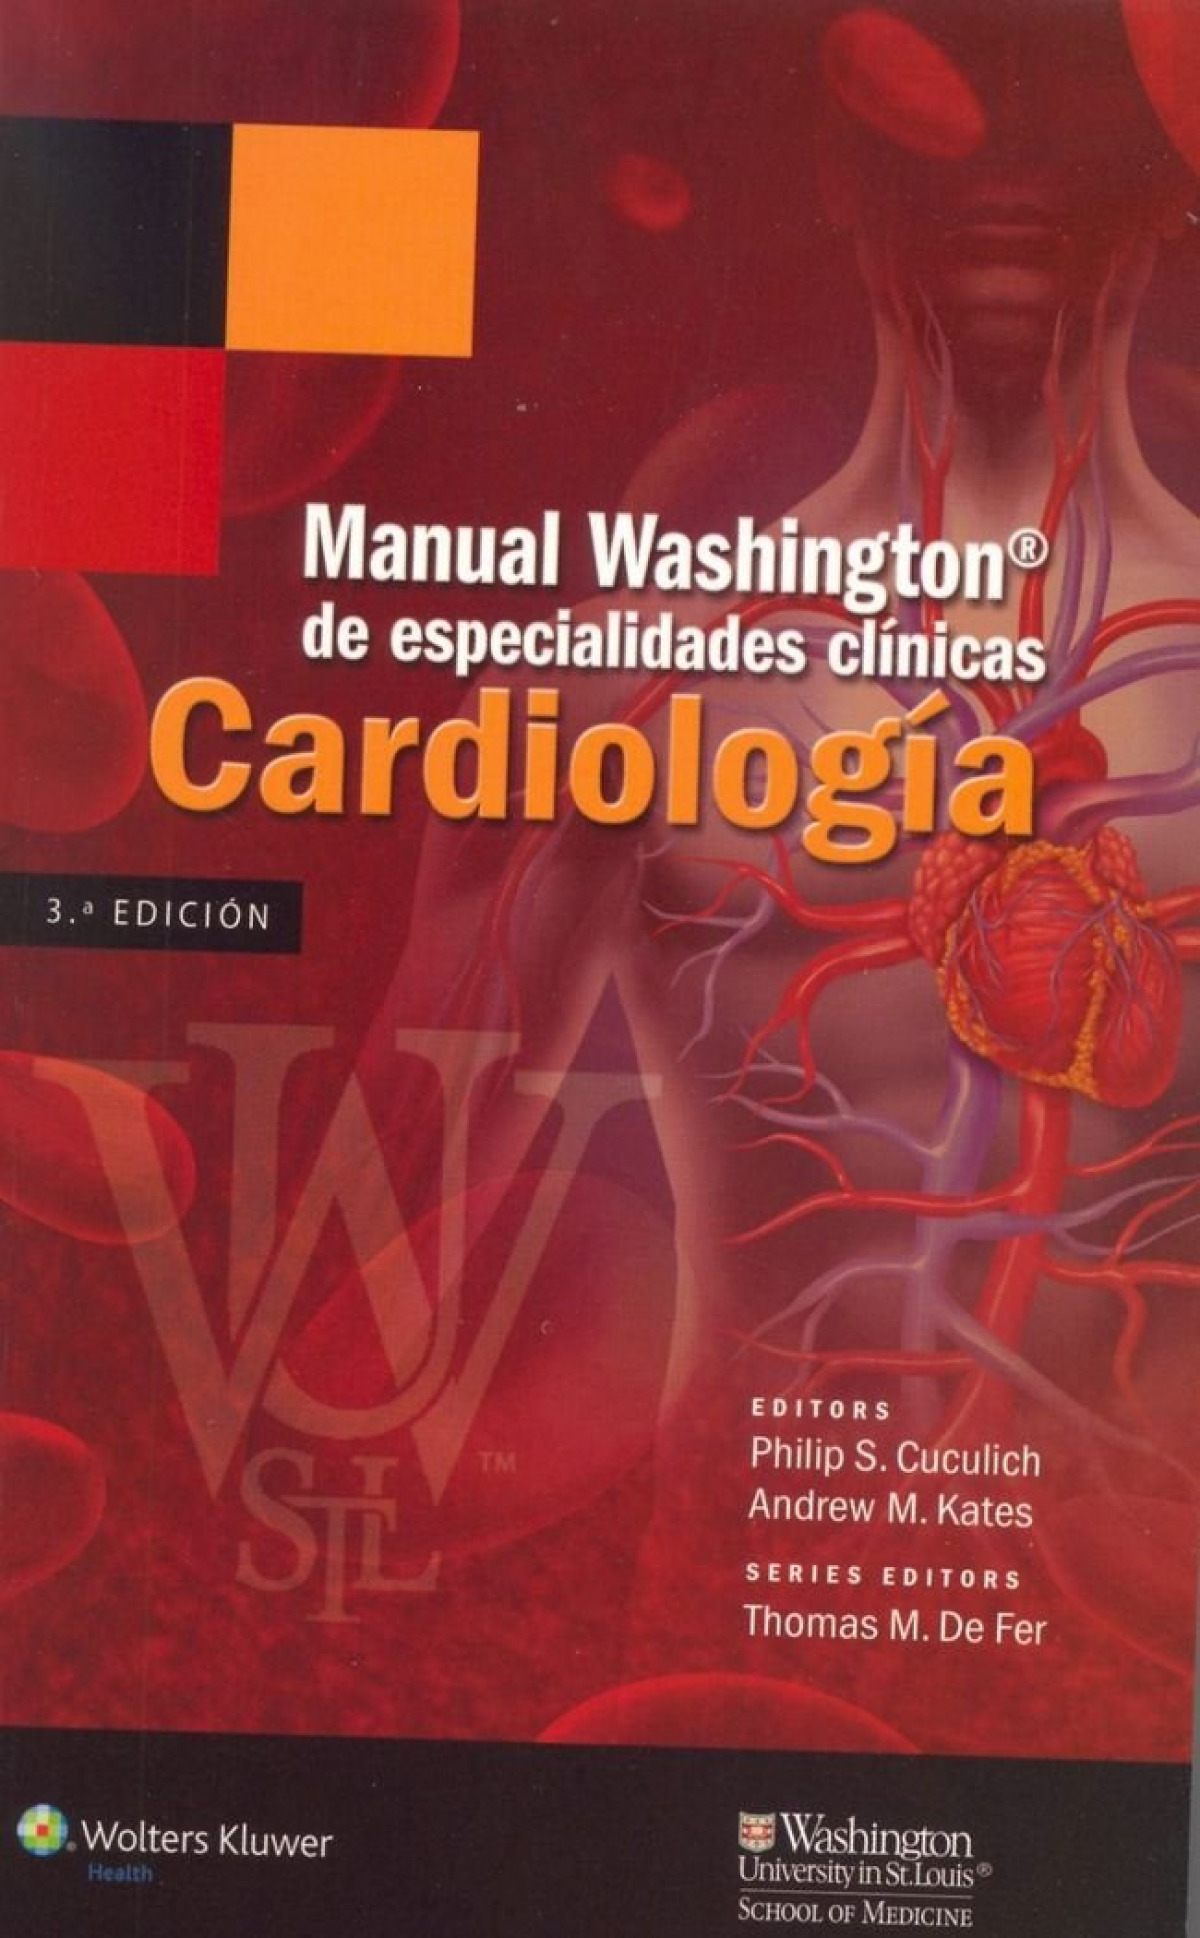 Manual Washington de especialidades clínicas, Cardiología.